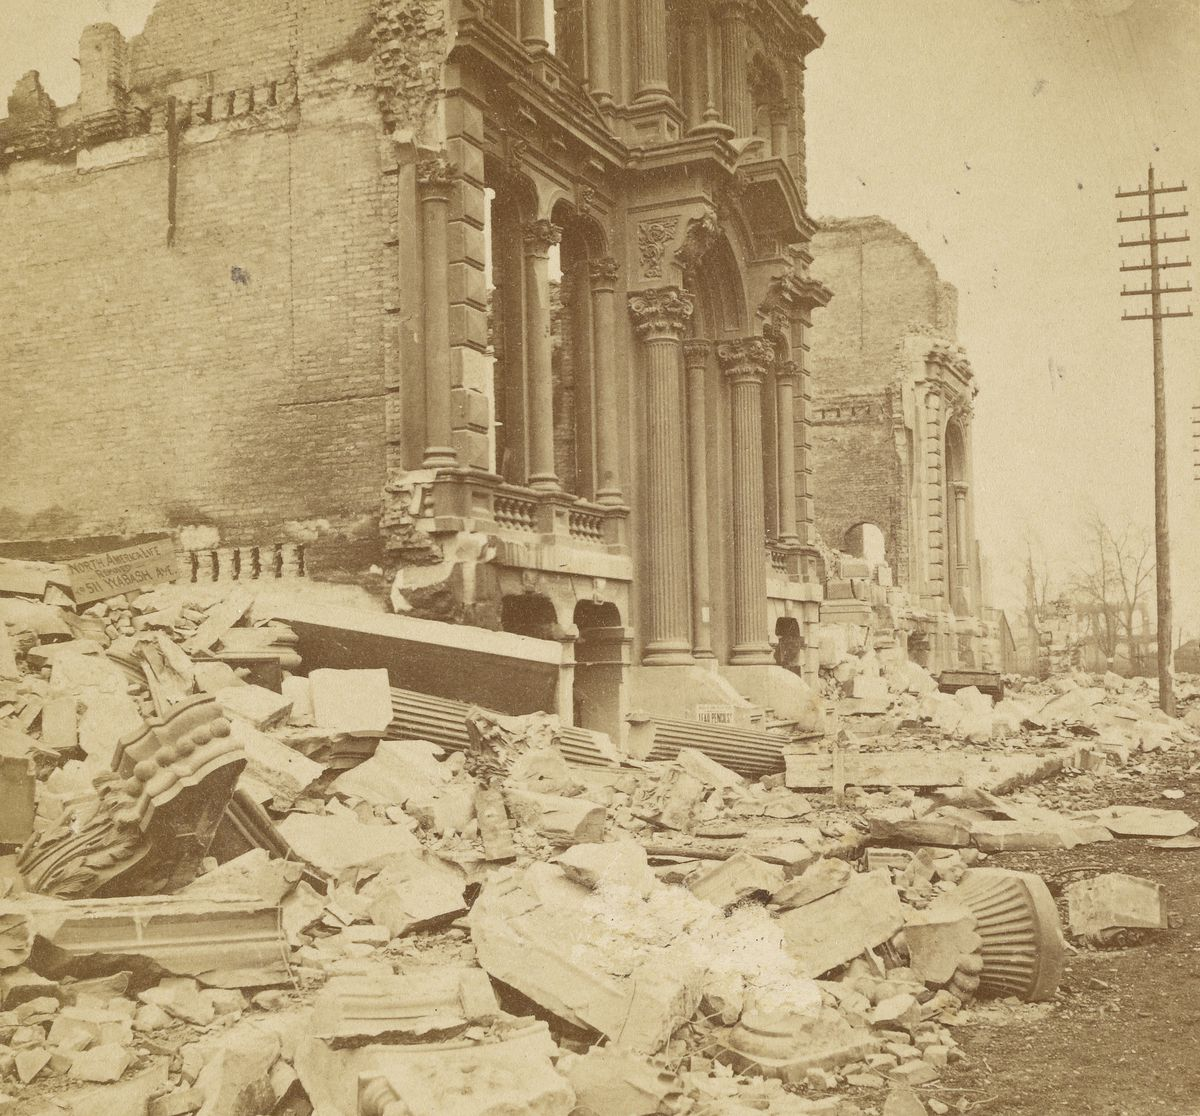 Washington Street in downtown Chicago after the Great Chicago Fire of 1871.